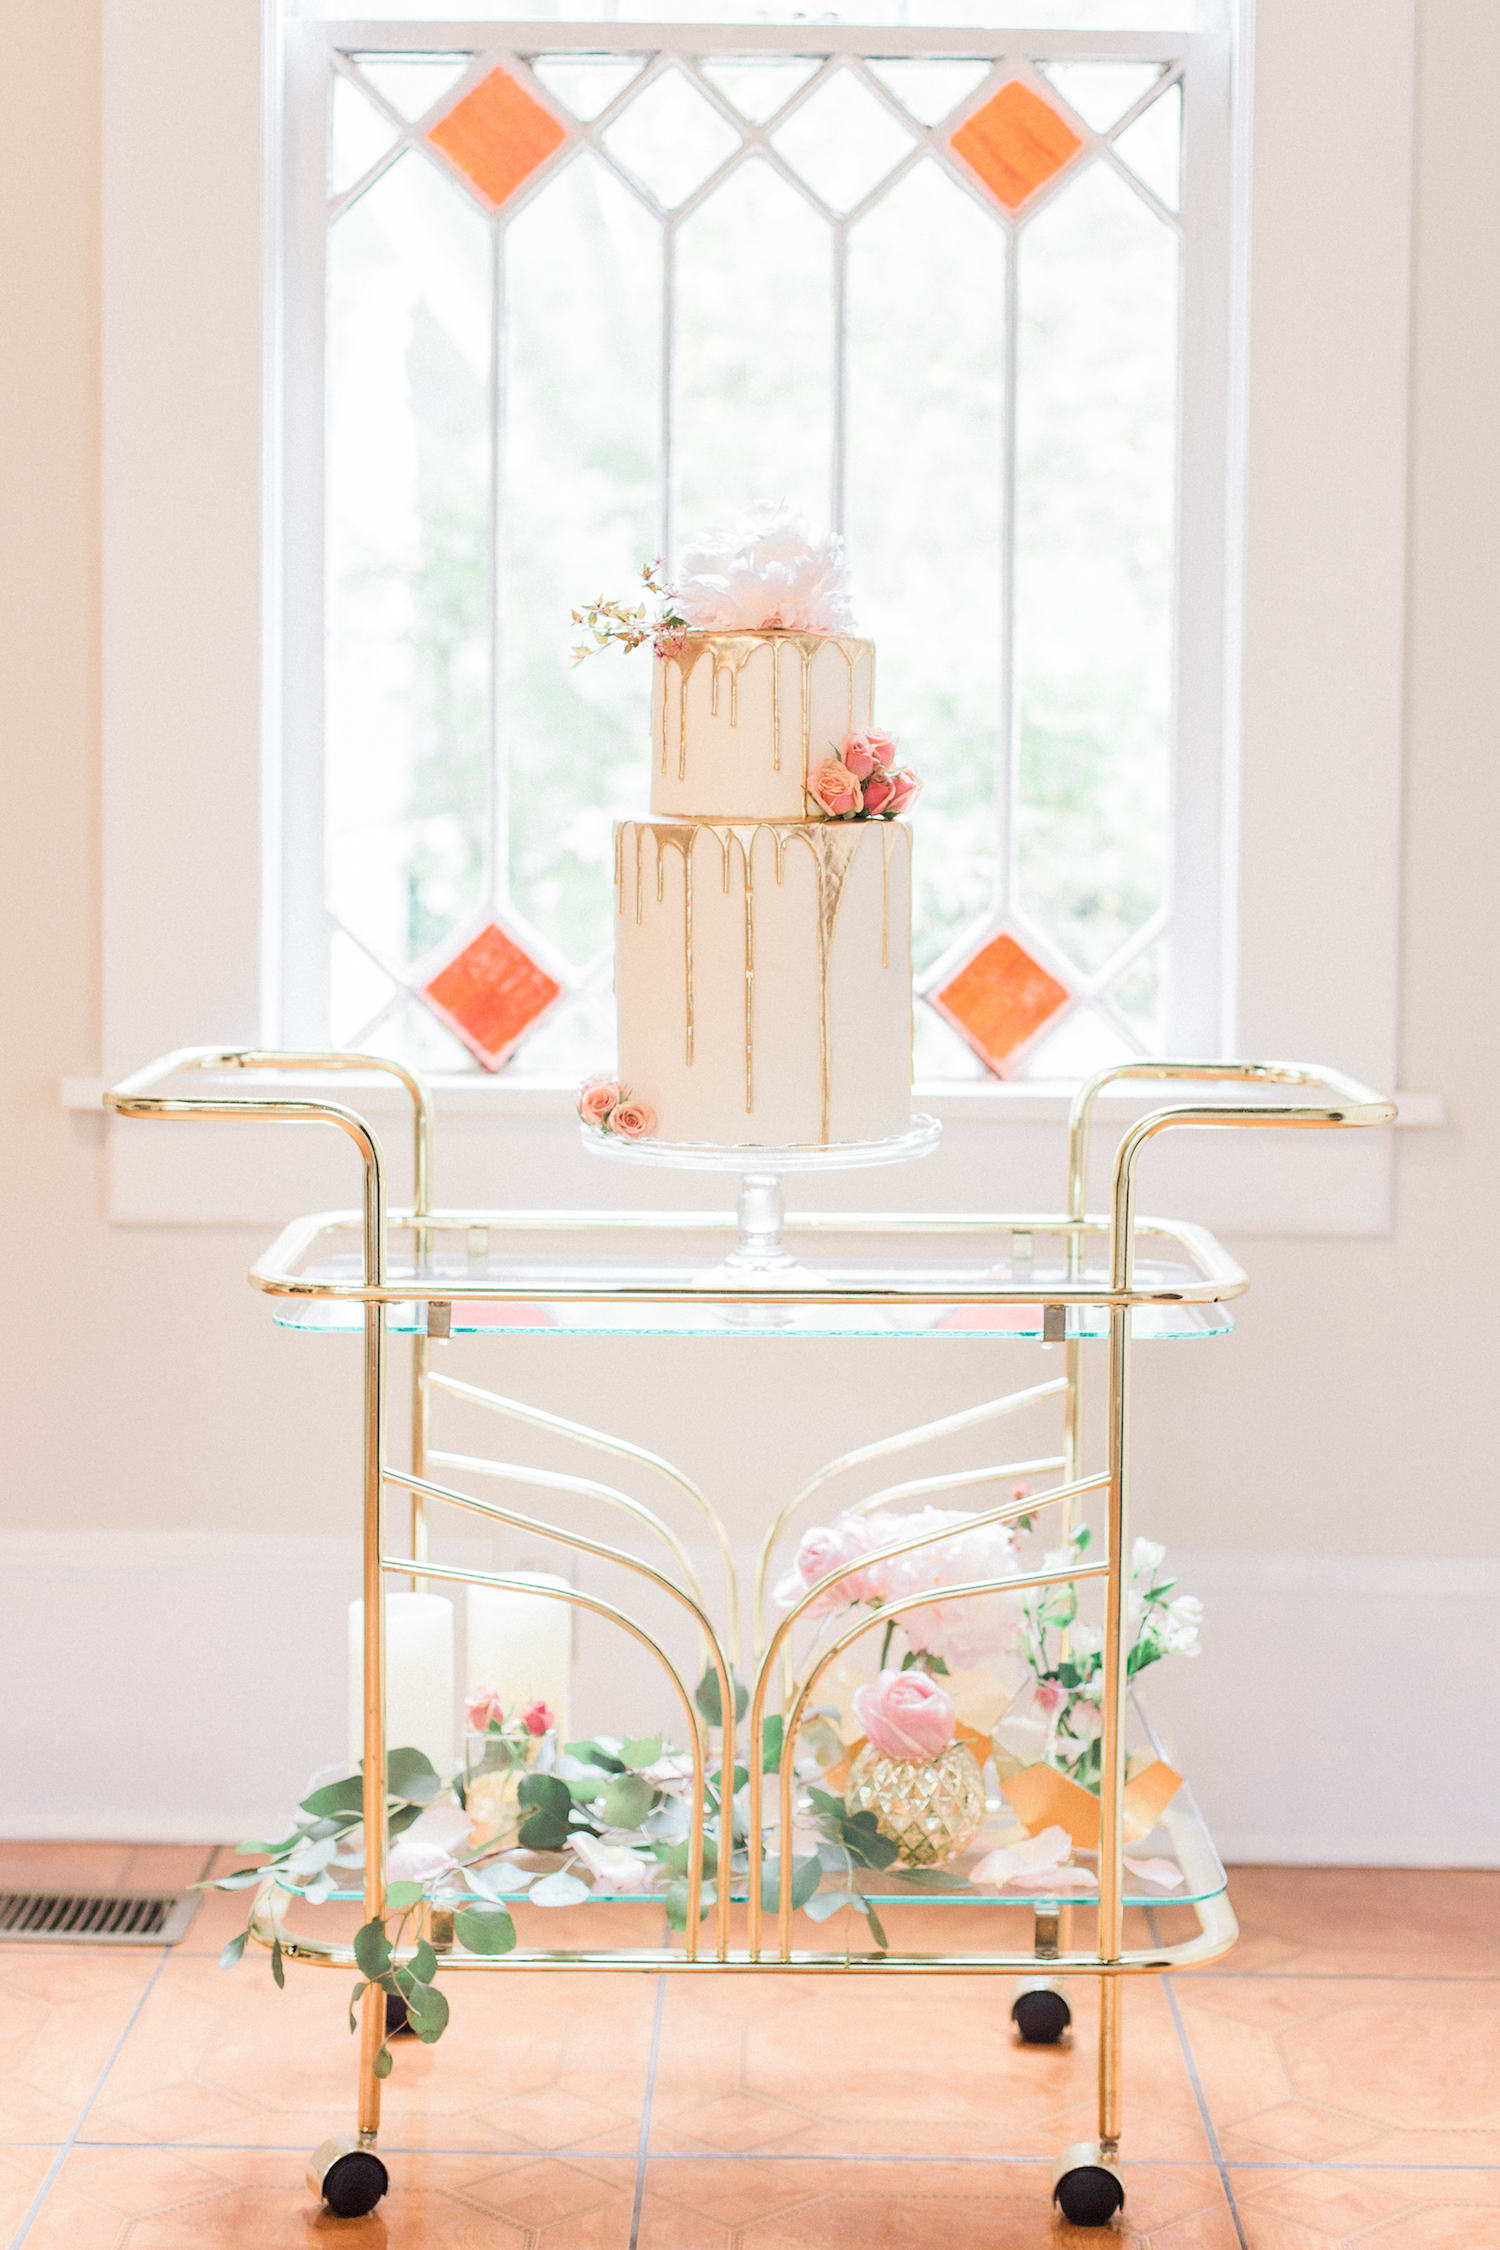 Two tier gold dripped wedding cake with roses and peonies on an antique gold bar cart.